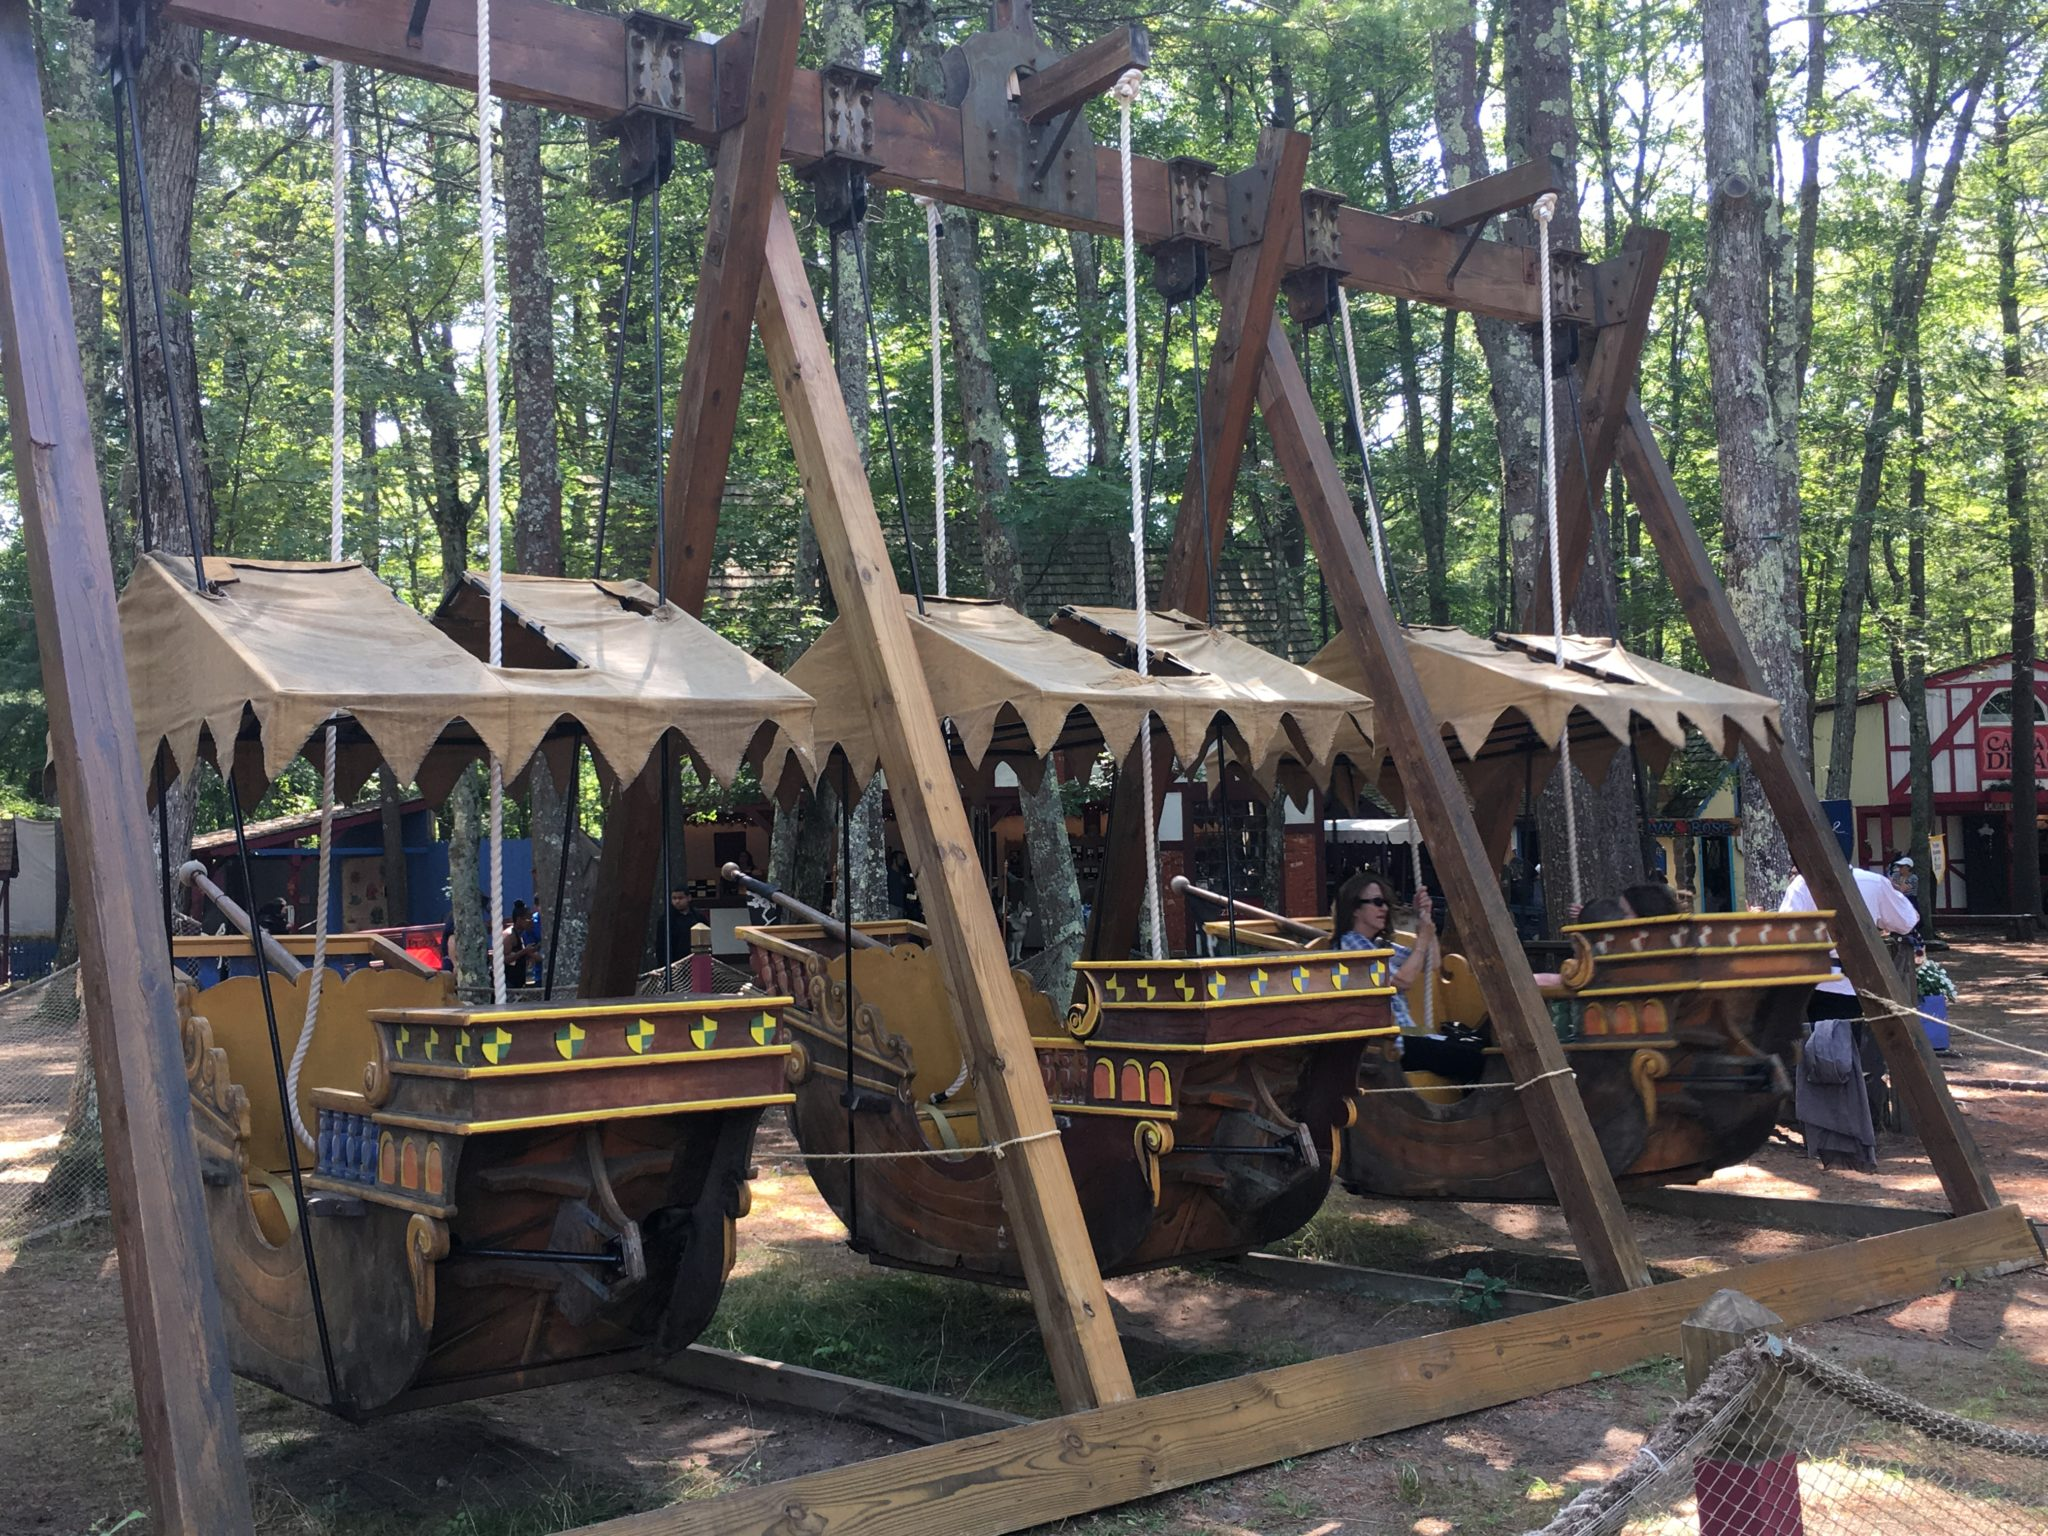 Ride the pirate ships when you are at King Richard's Faire!